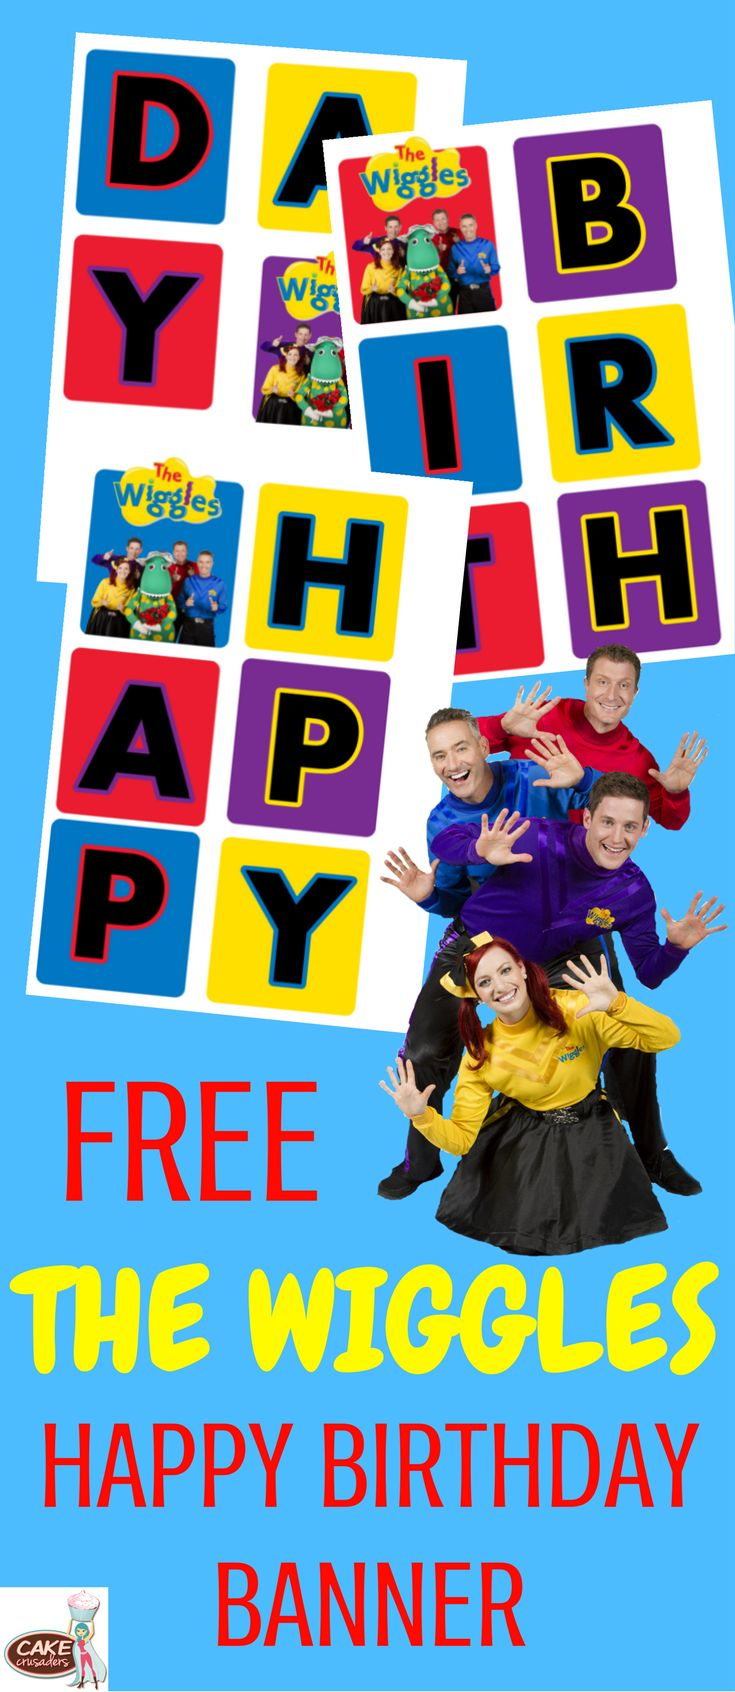 Free Wiggles party printables decorations for your kids birthday party.